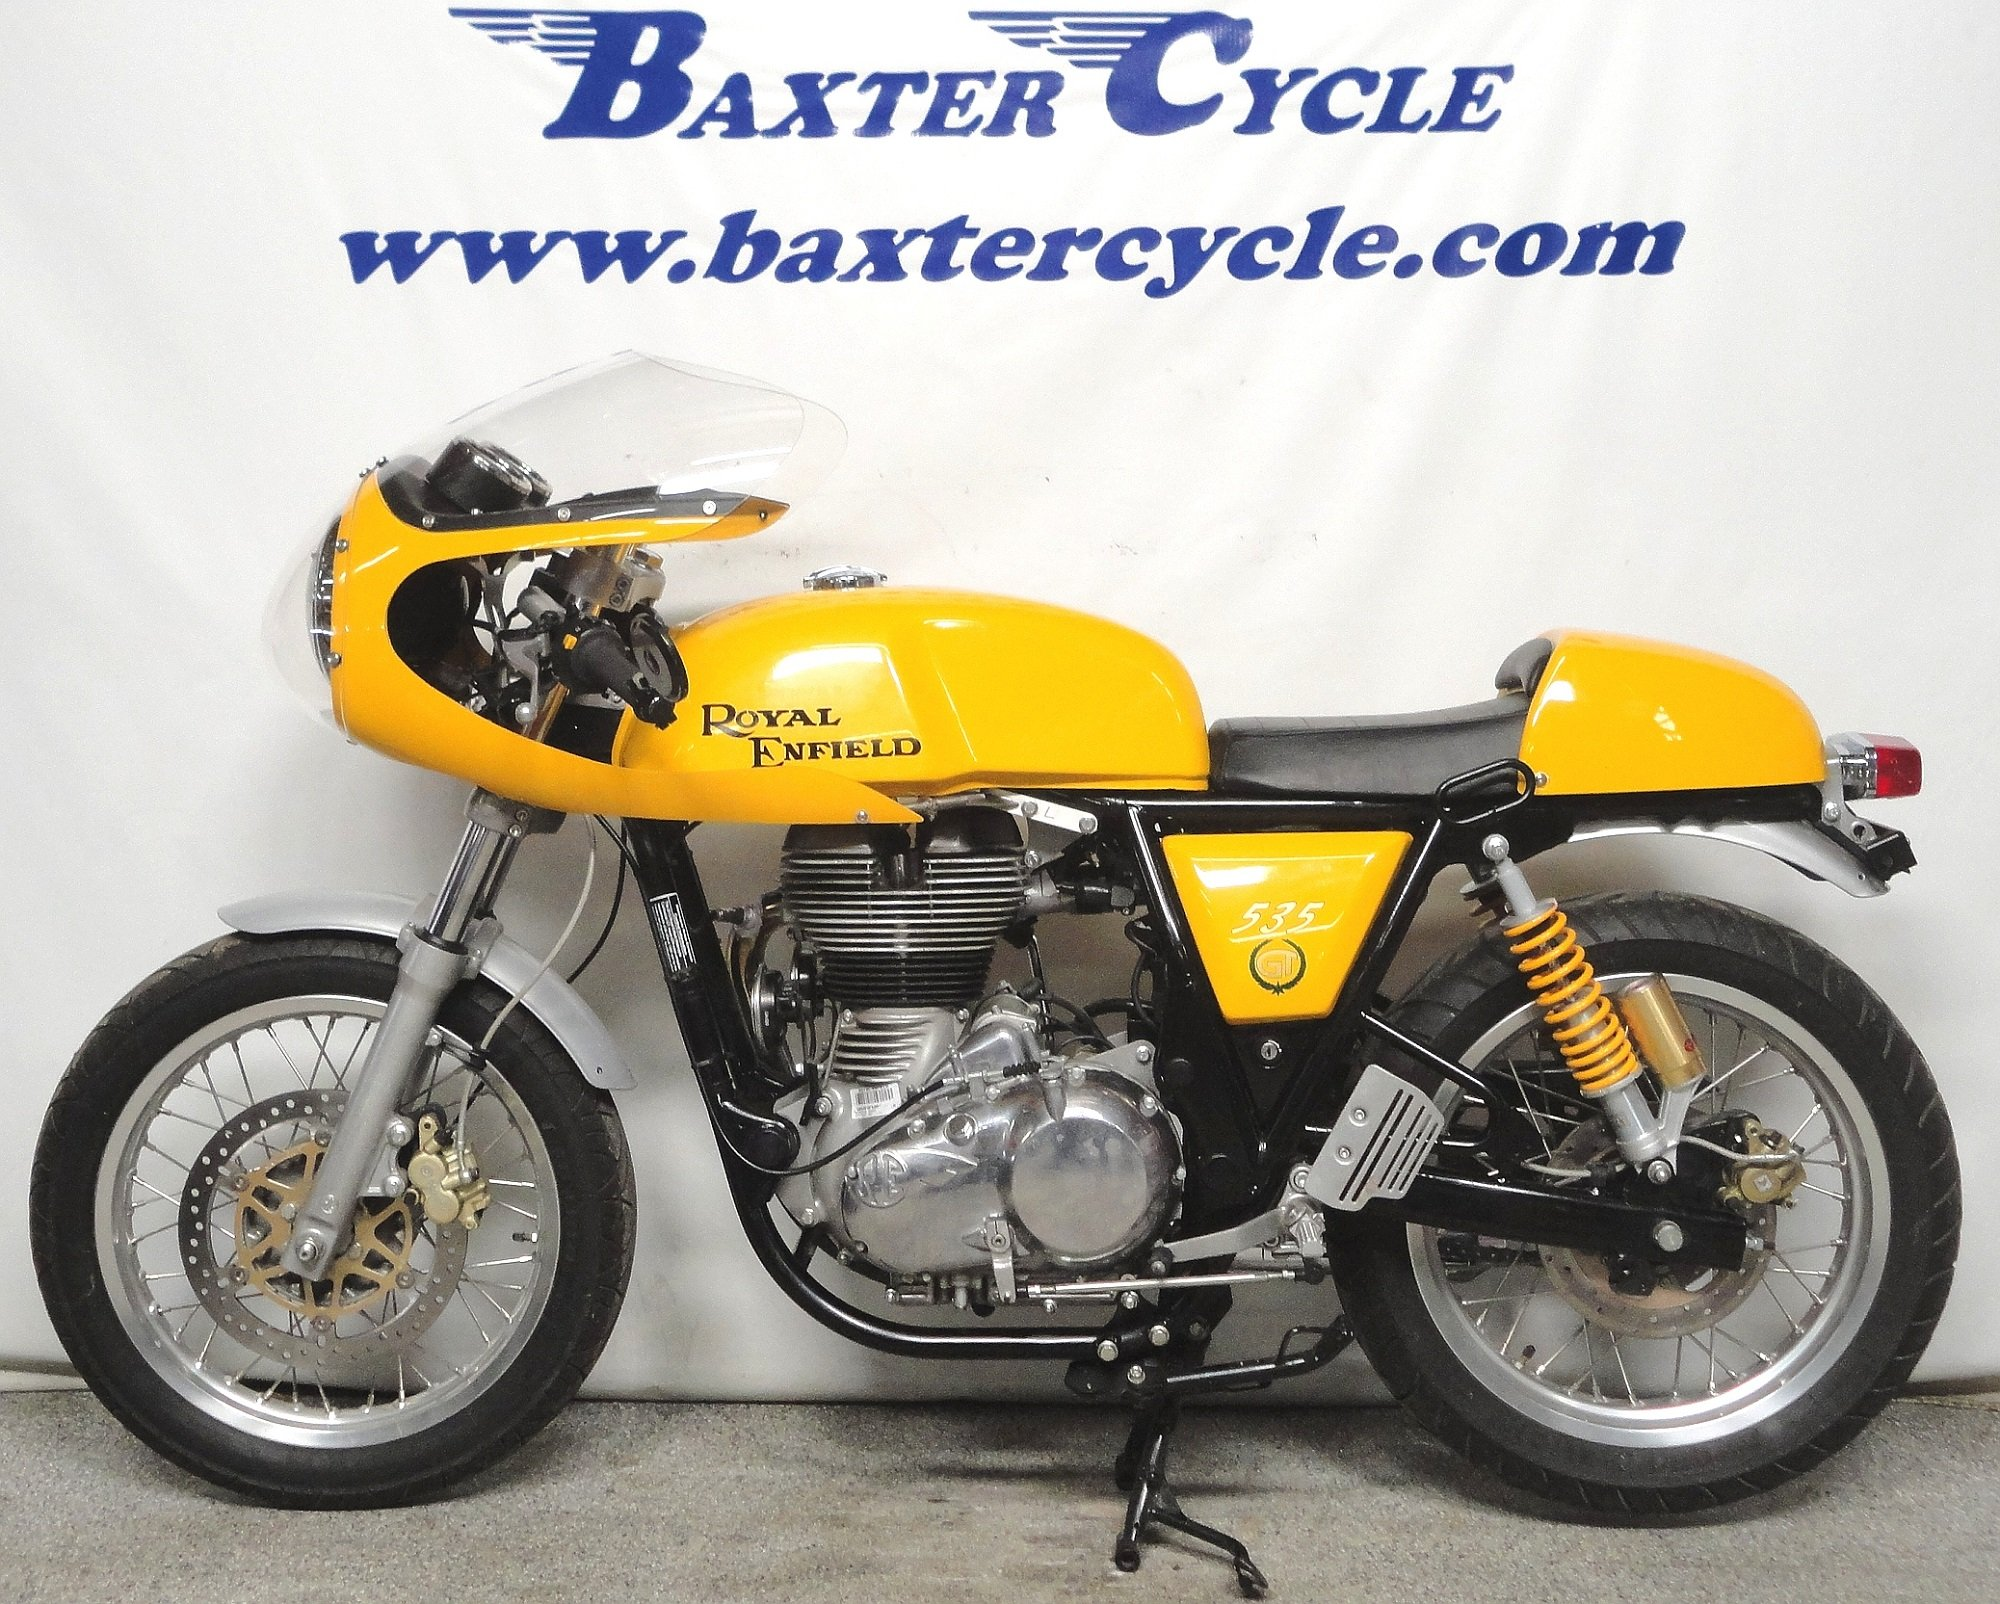 2015 Royal Enfield Continental Gt Baxter Cycle